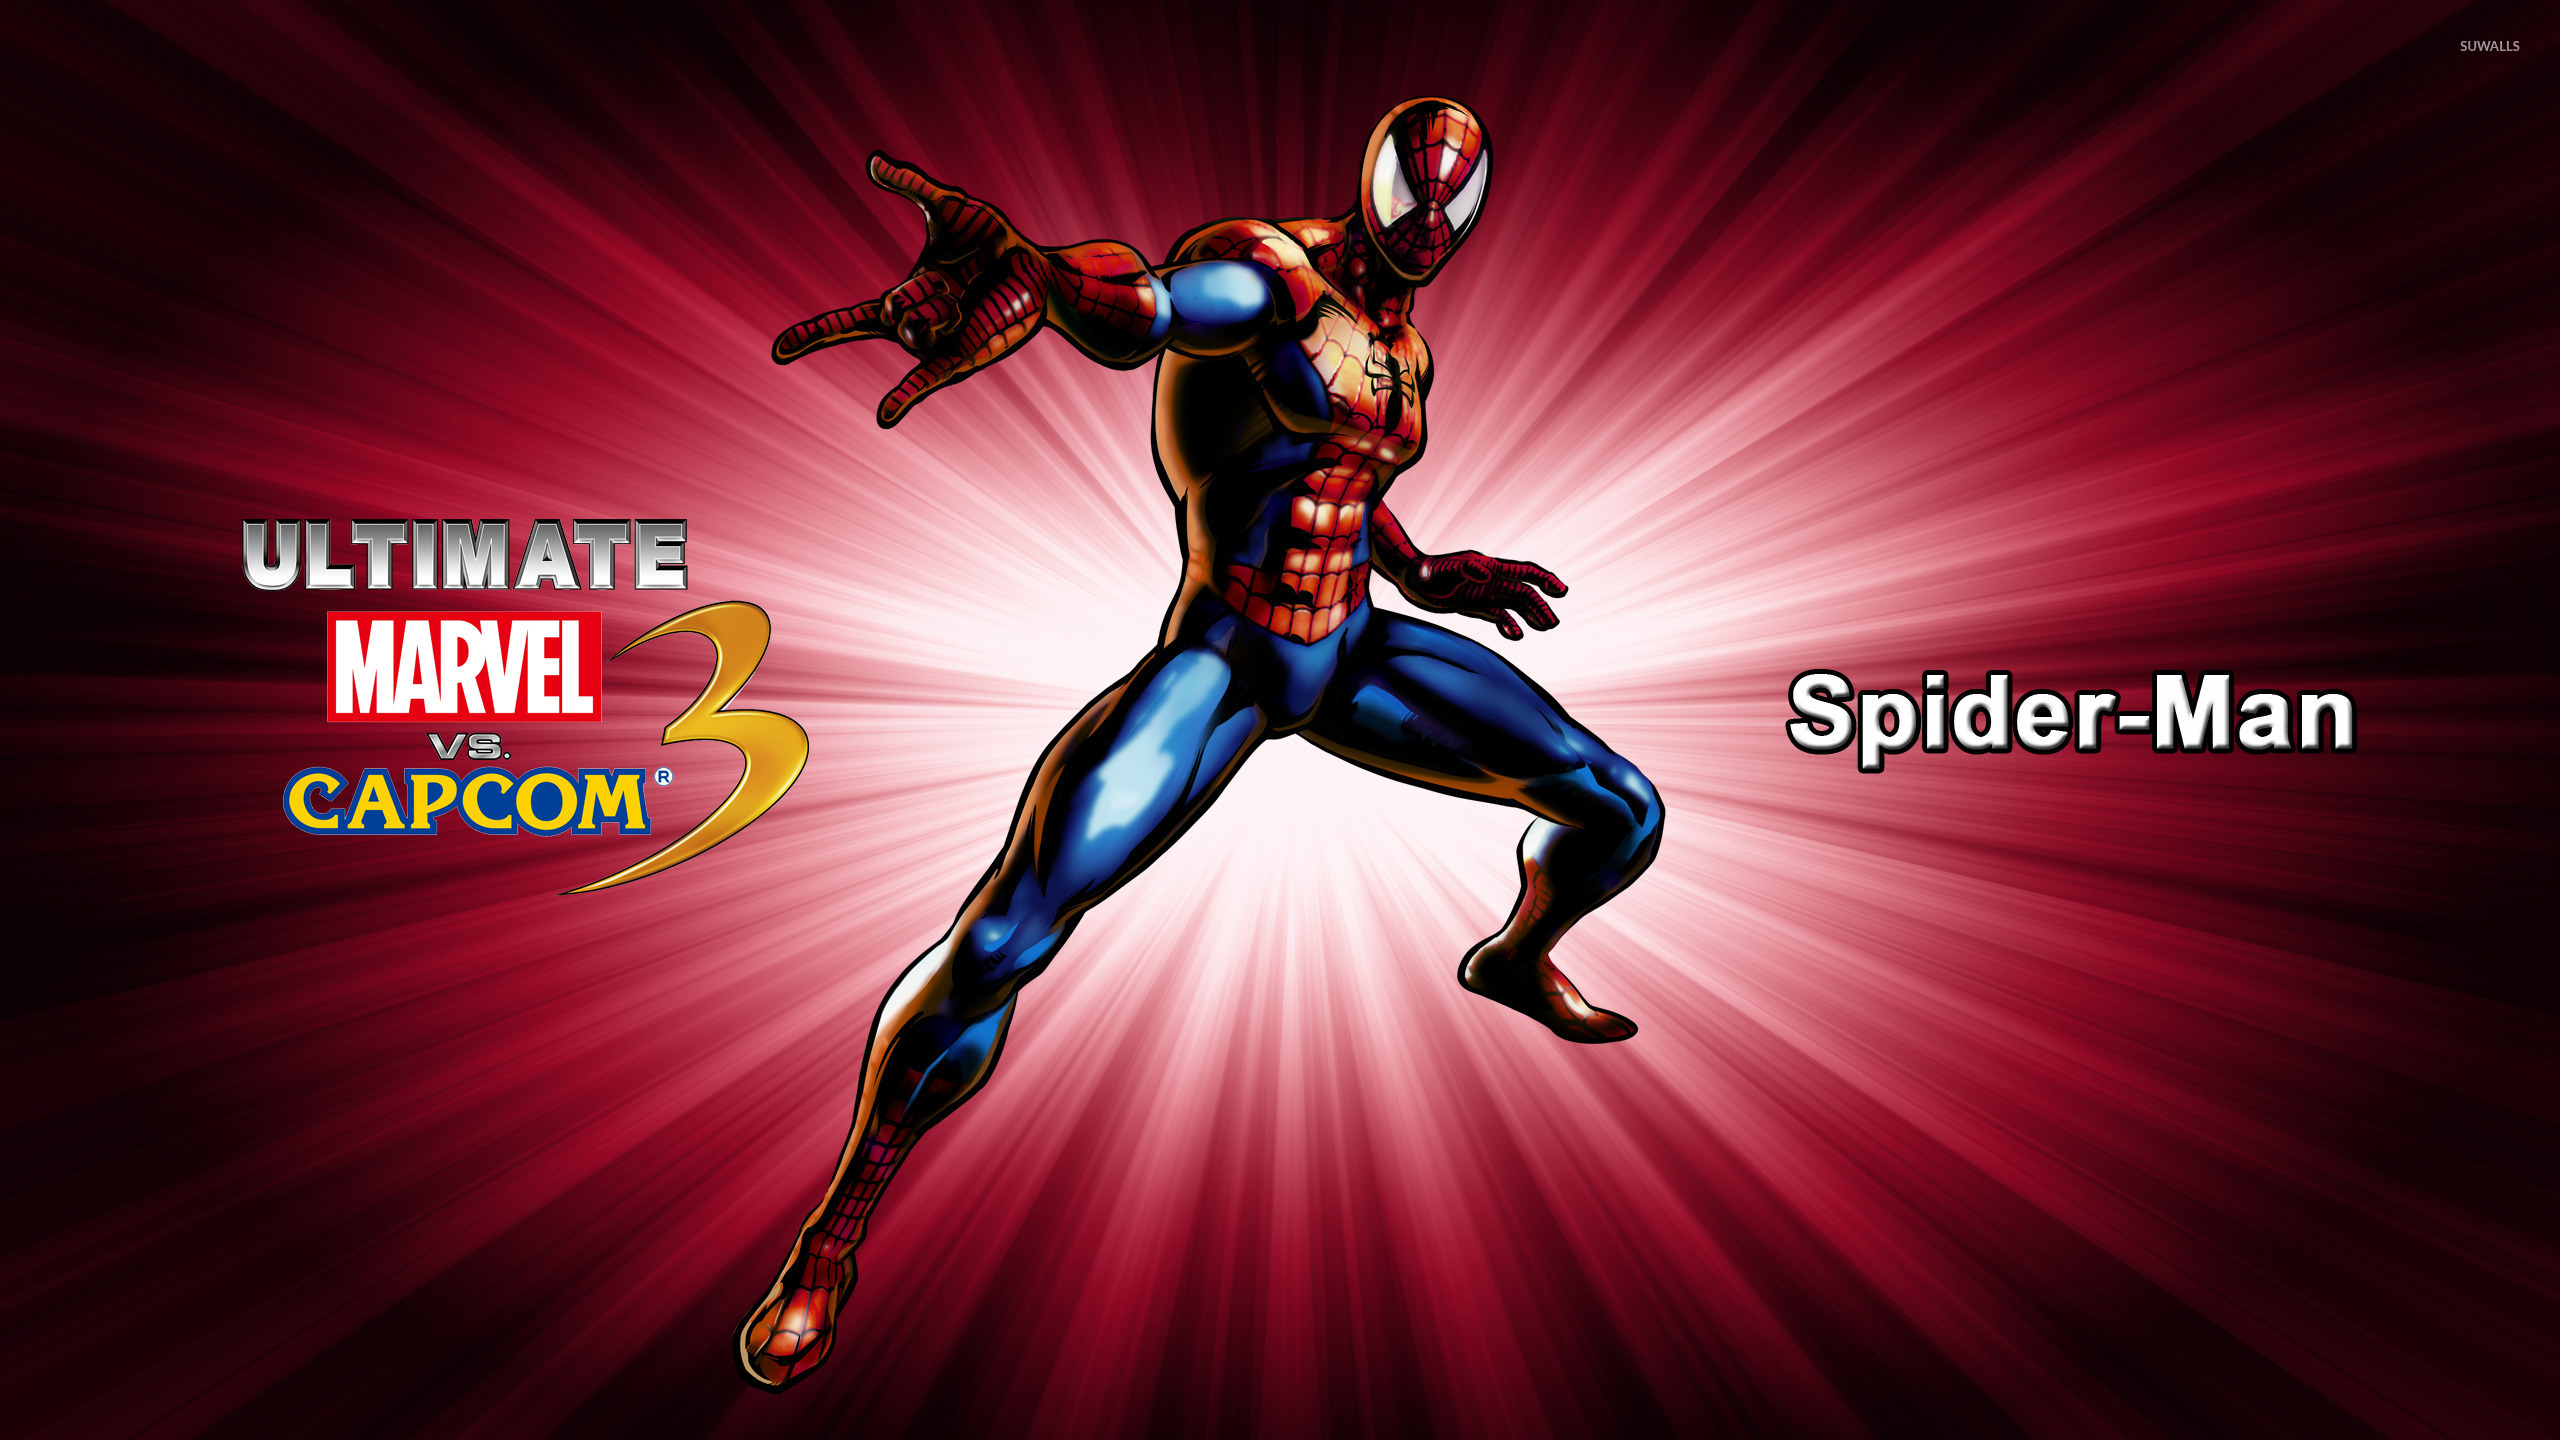 spider man ultimate marvel vs capcom 3 wallpaper game wallpapers 12423. Black Bedroom Furniture Sets. Home Design Ideas